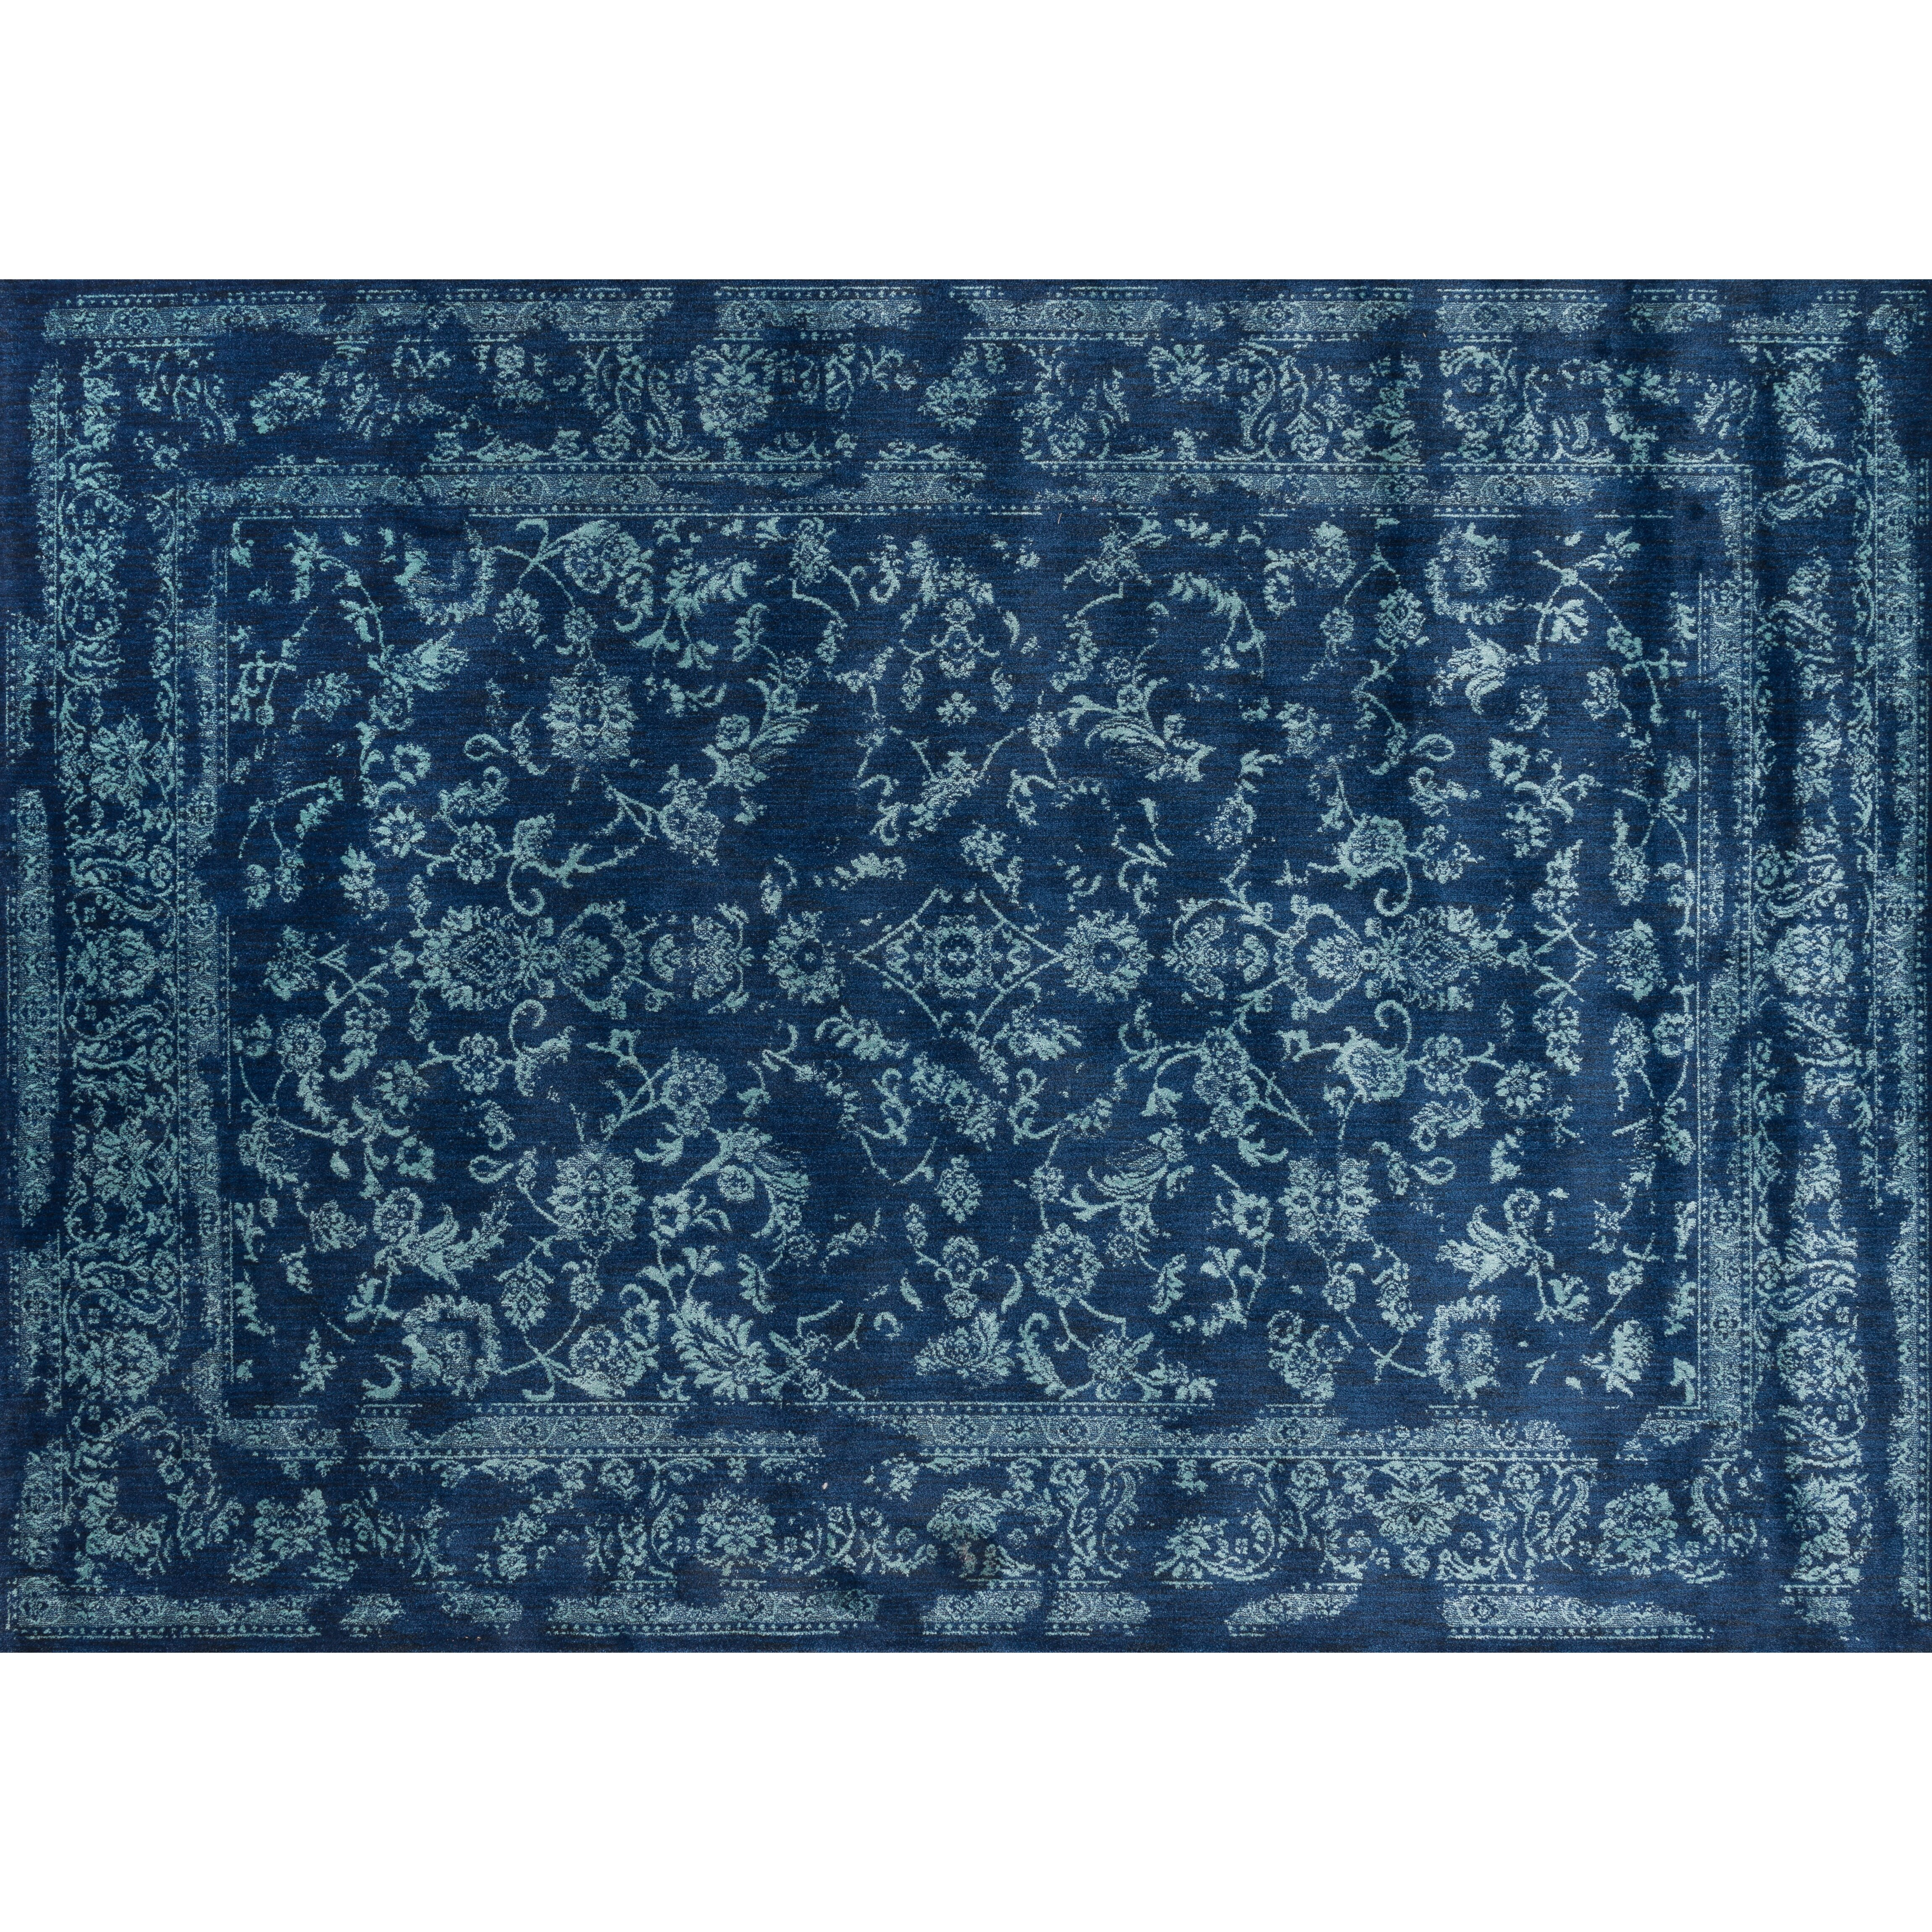 Bedroom Area Rug Size Guide